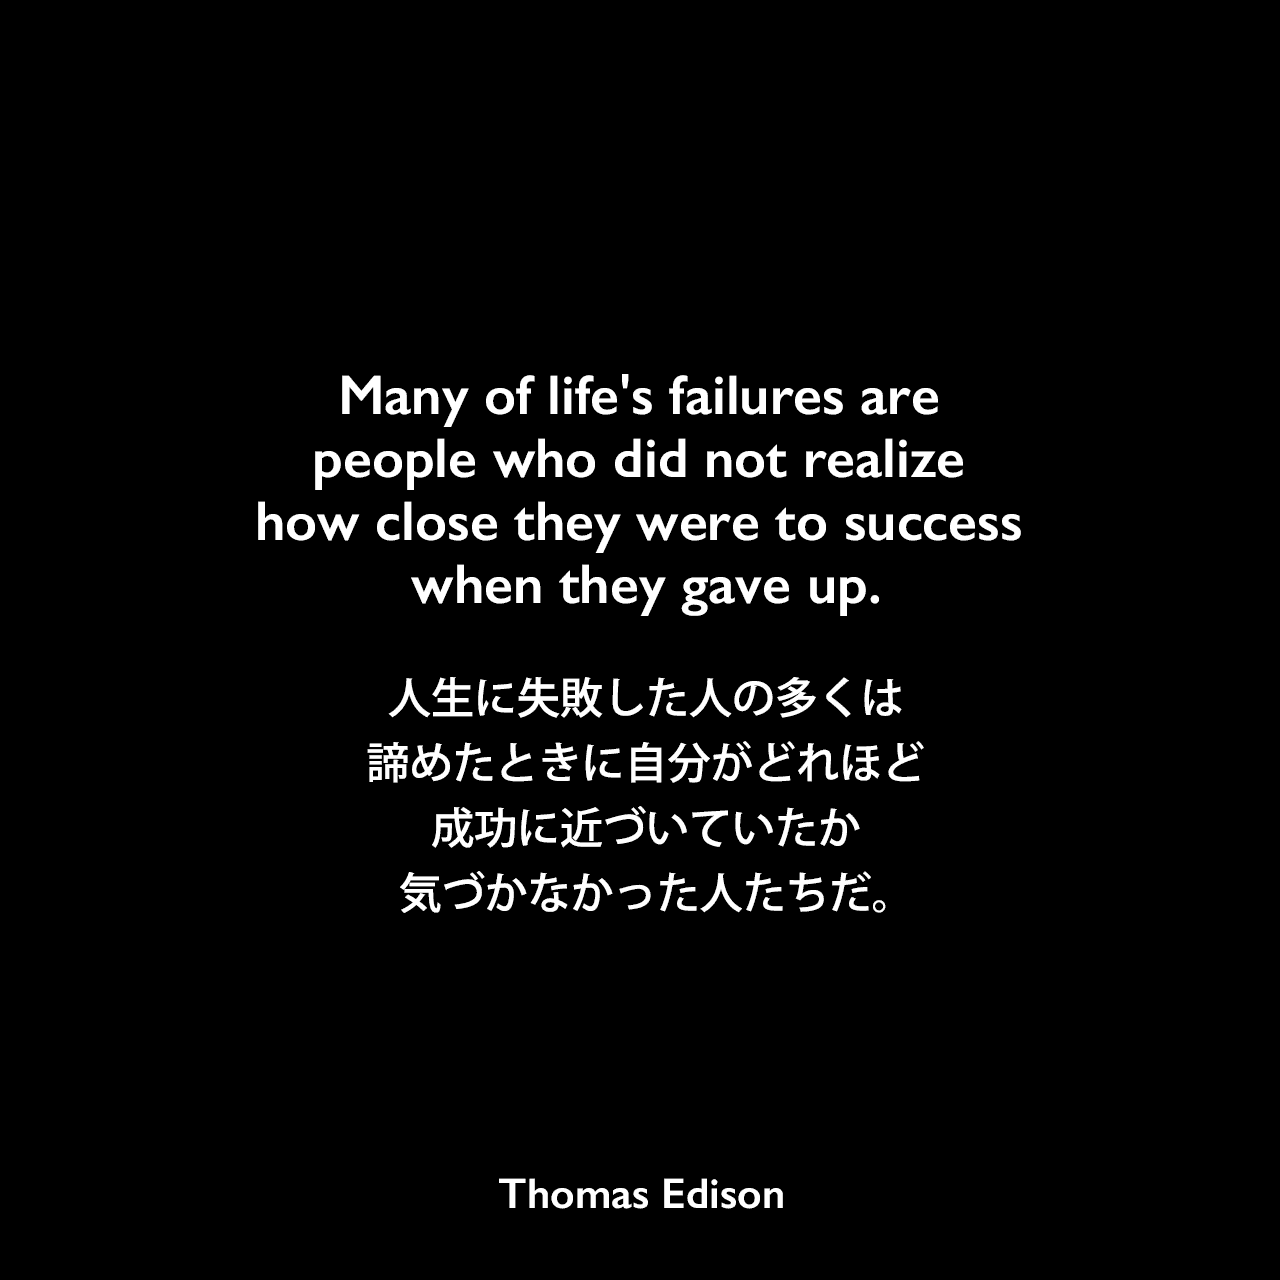 Many of life's failures are people who did not realize how close they were to success when they gave up.人生に失敗した人の多くは、諦めたときに自分がどれほど成功に近づいていたか気づかなかった人たちだ。- デボラ・ヘッドストローム・ページによる本「From Telegraph to Light Bulb with Thomas Edison」に1887年のエジソンの言葉として記載Thomas Edison